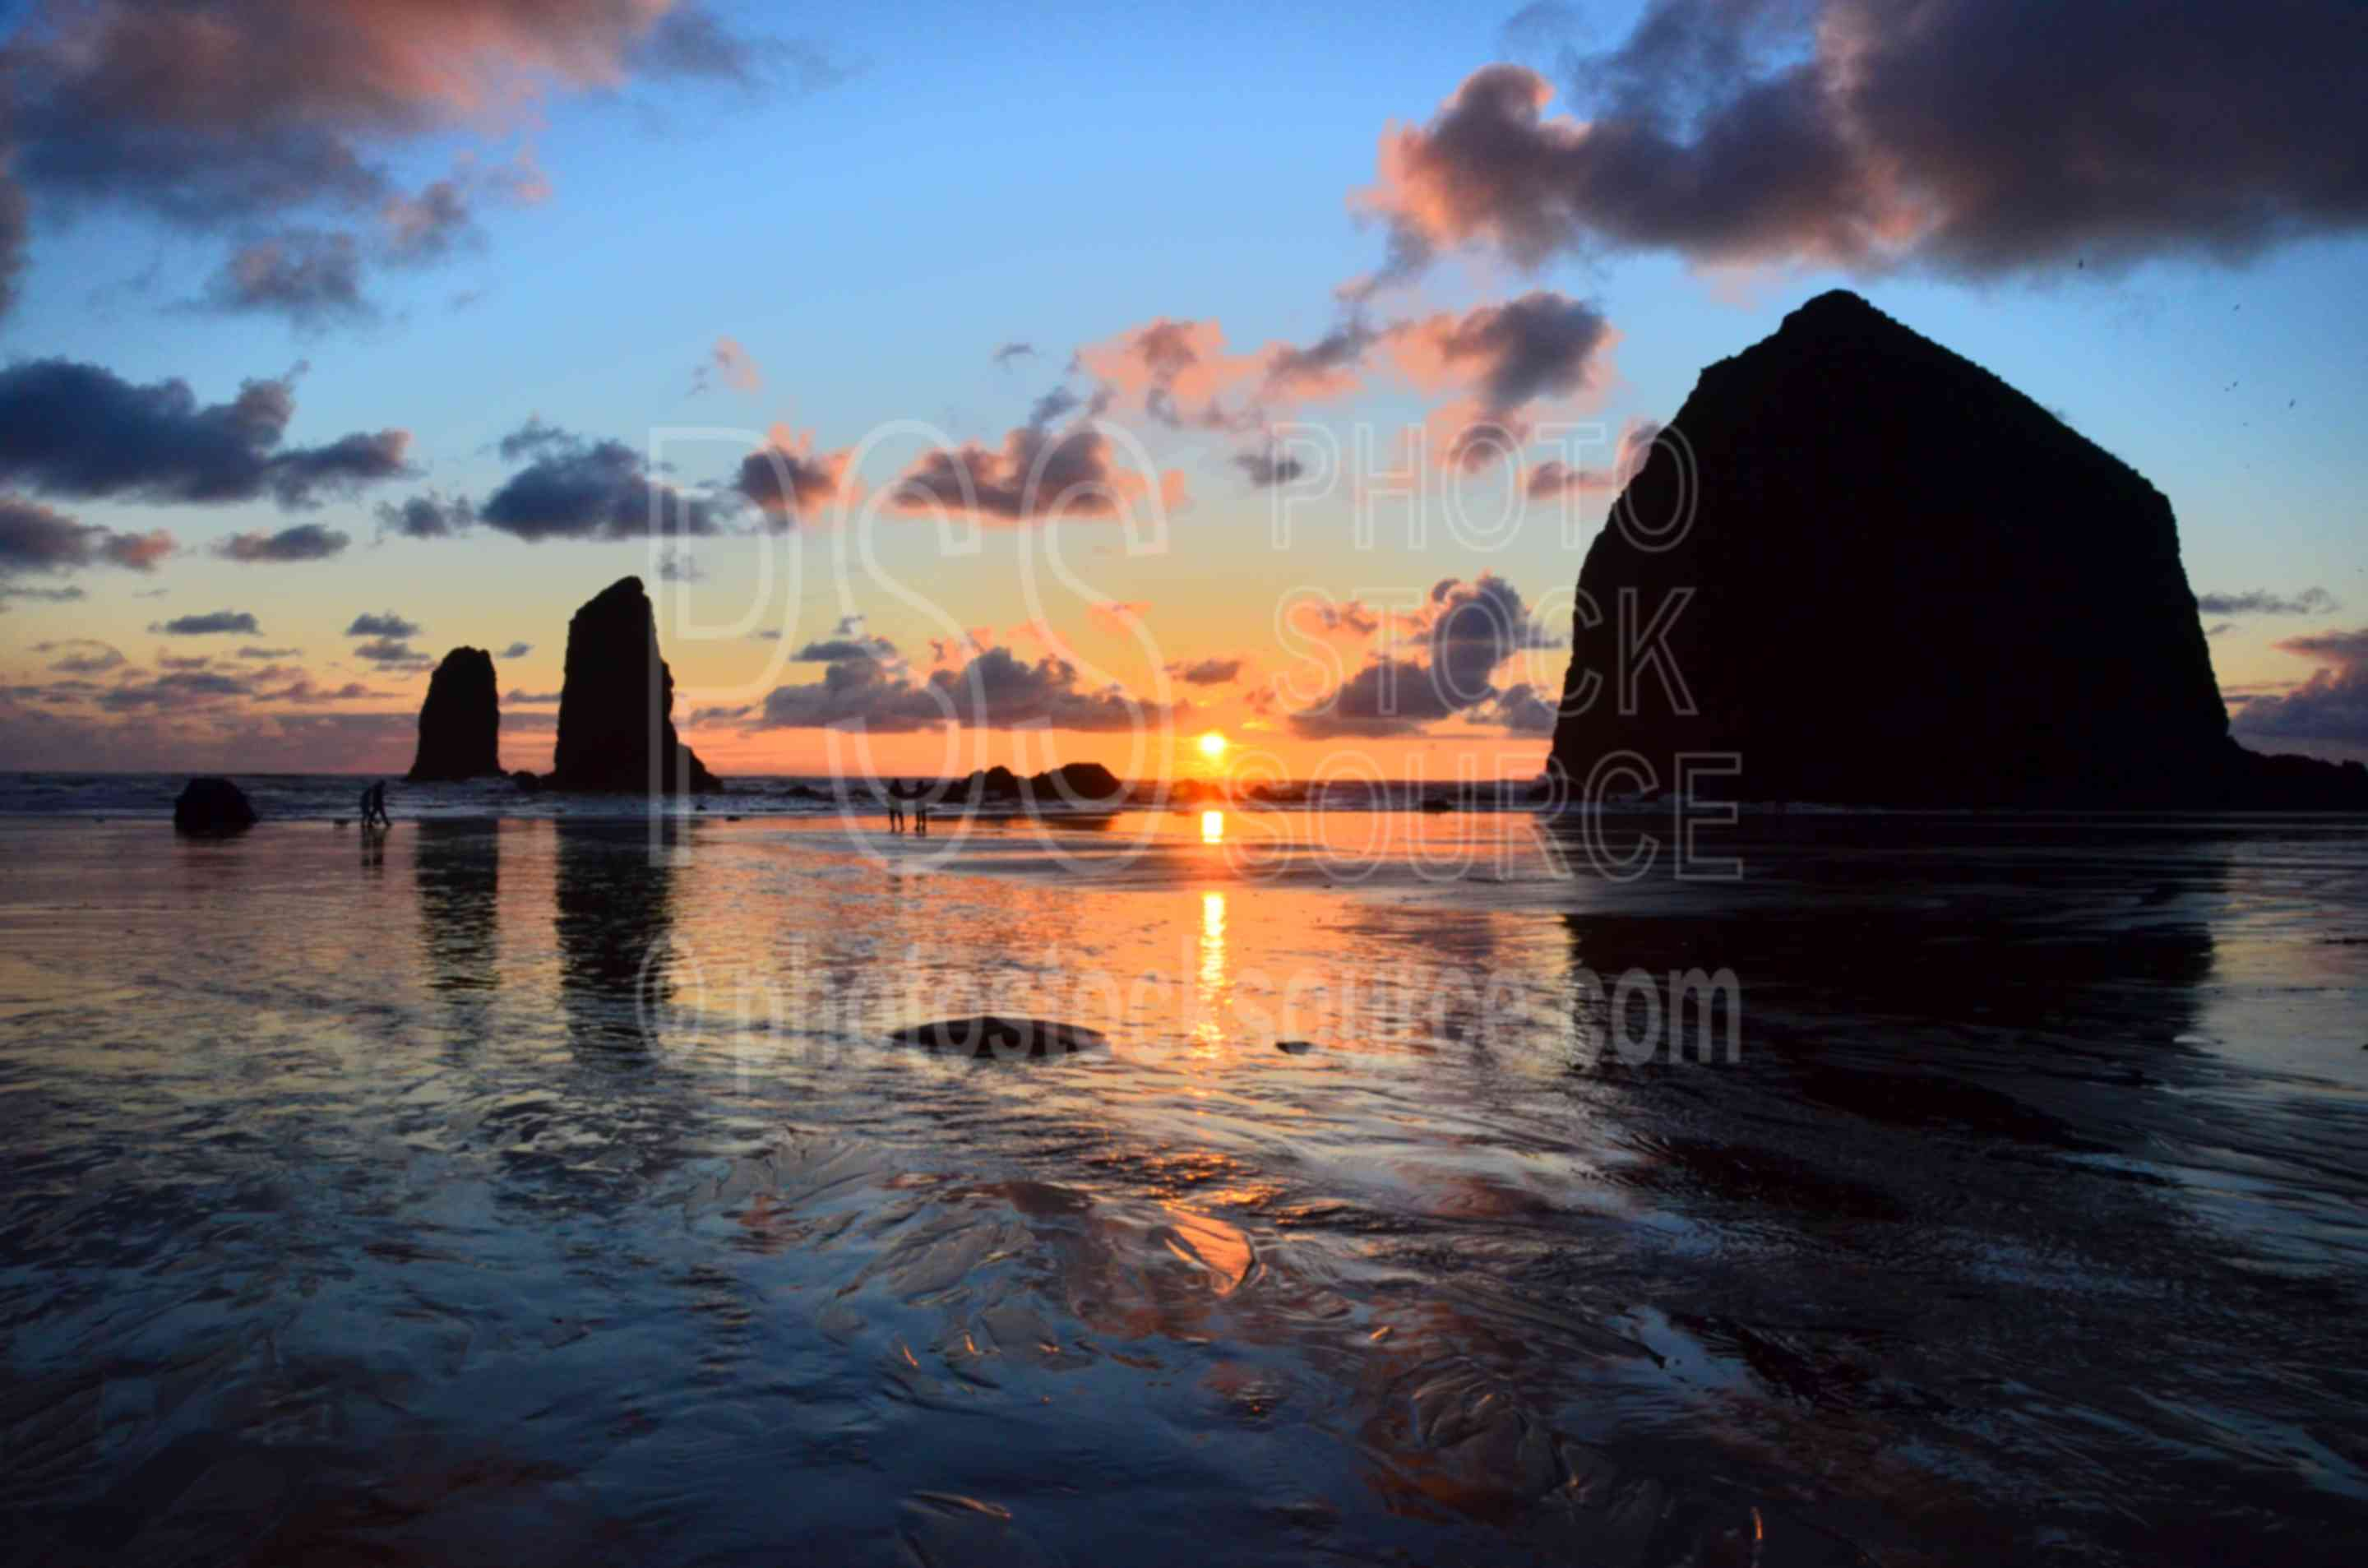 Haystack Rock,rocks,seastacks,coast,beach,clouds,sunset,haystack rock,the needles